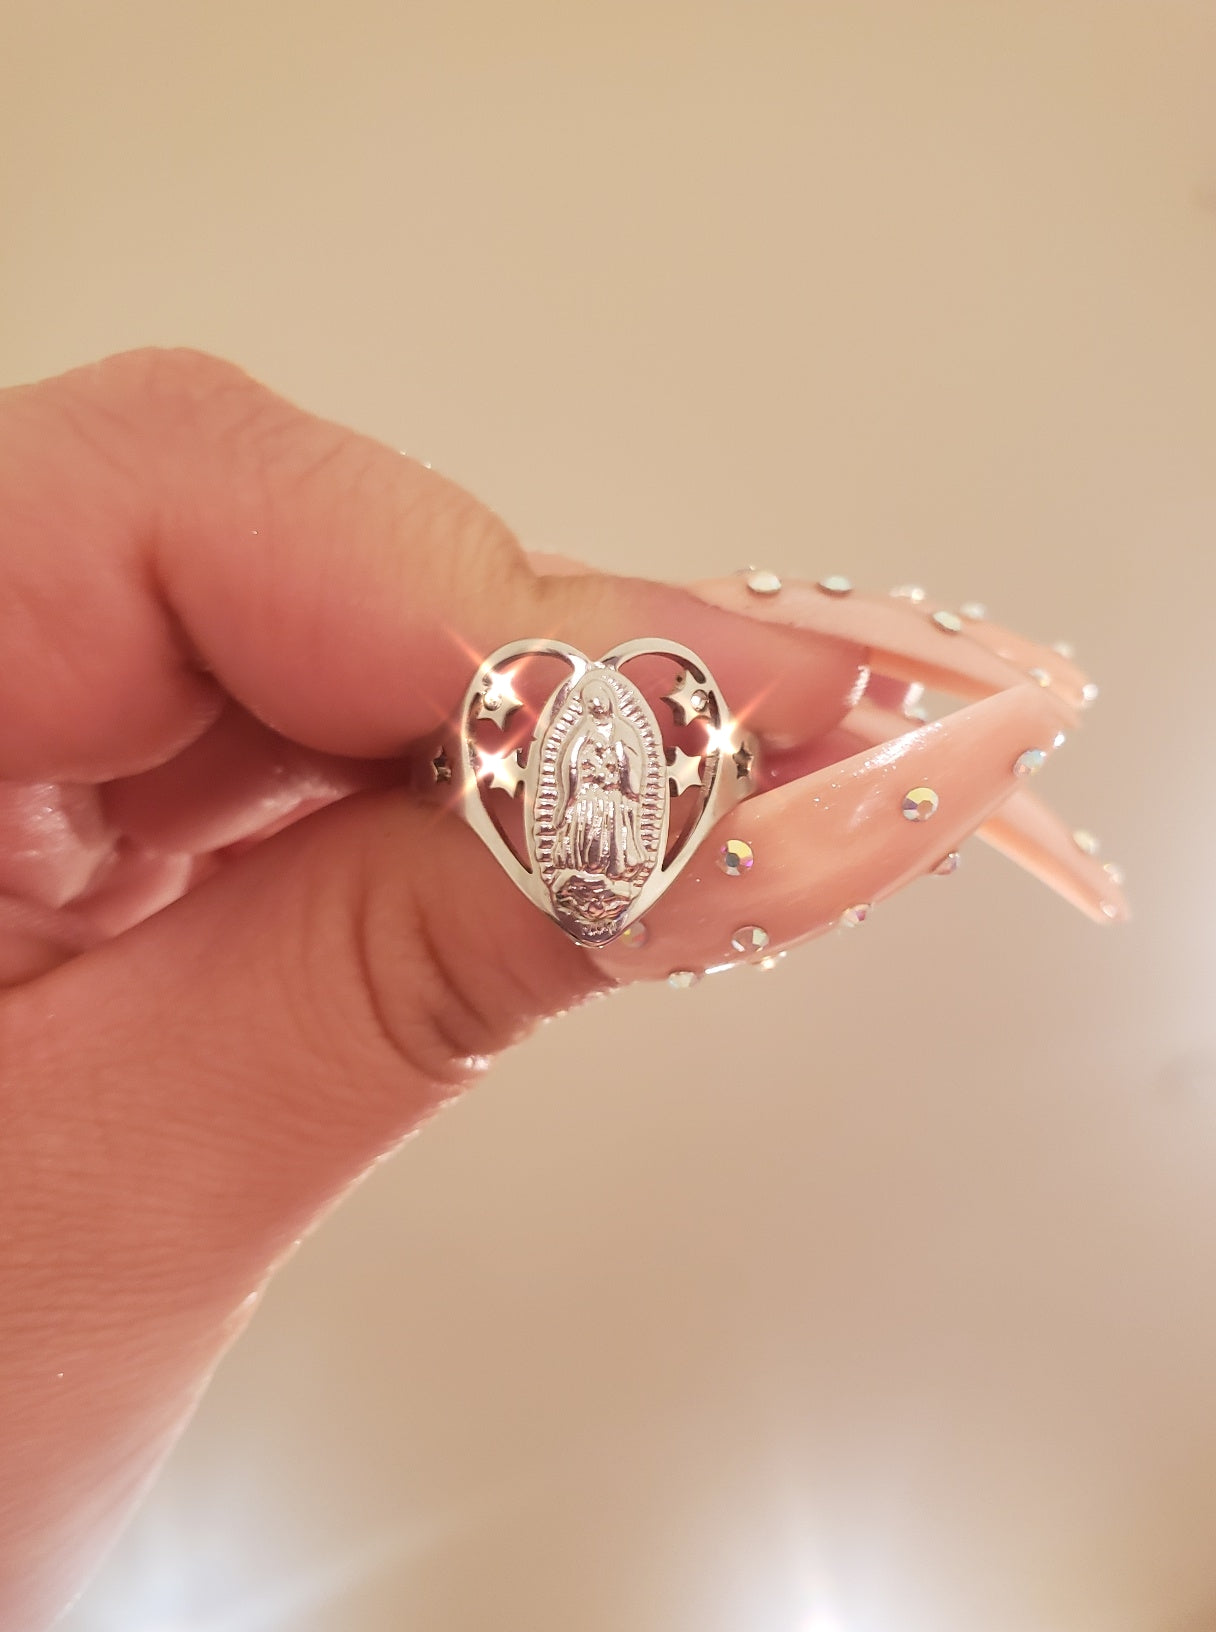 Heart shape ring with virgin mary image